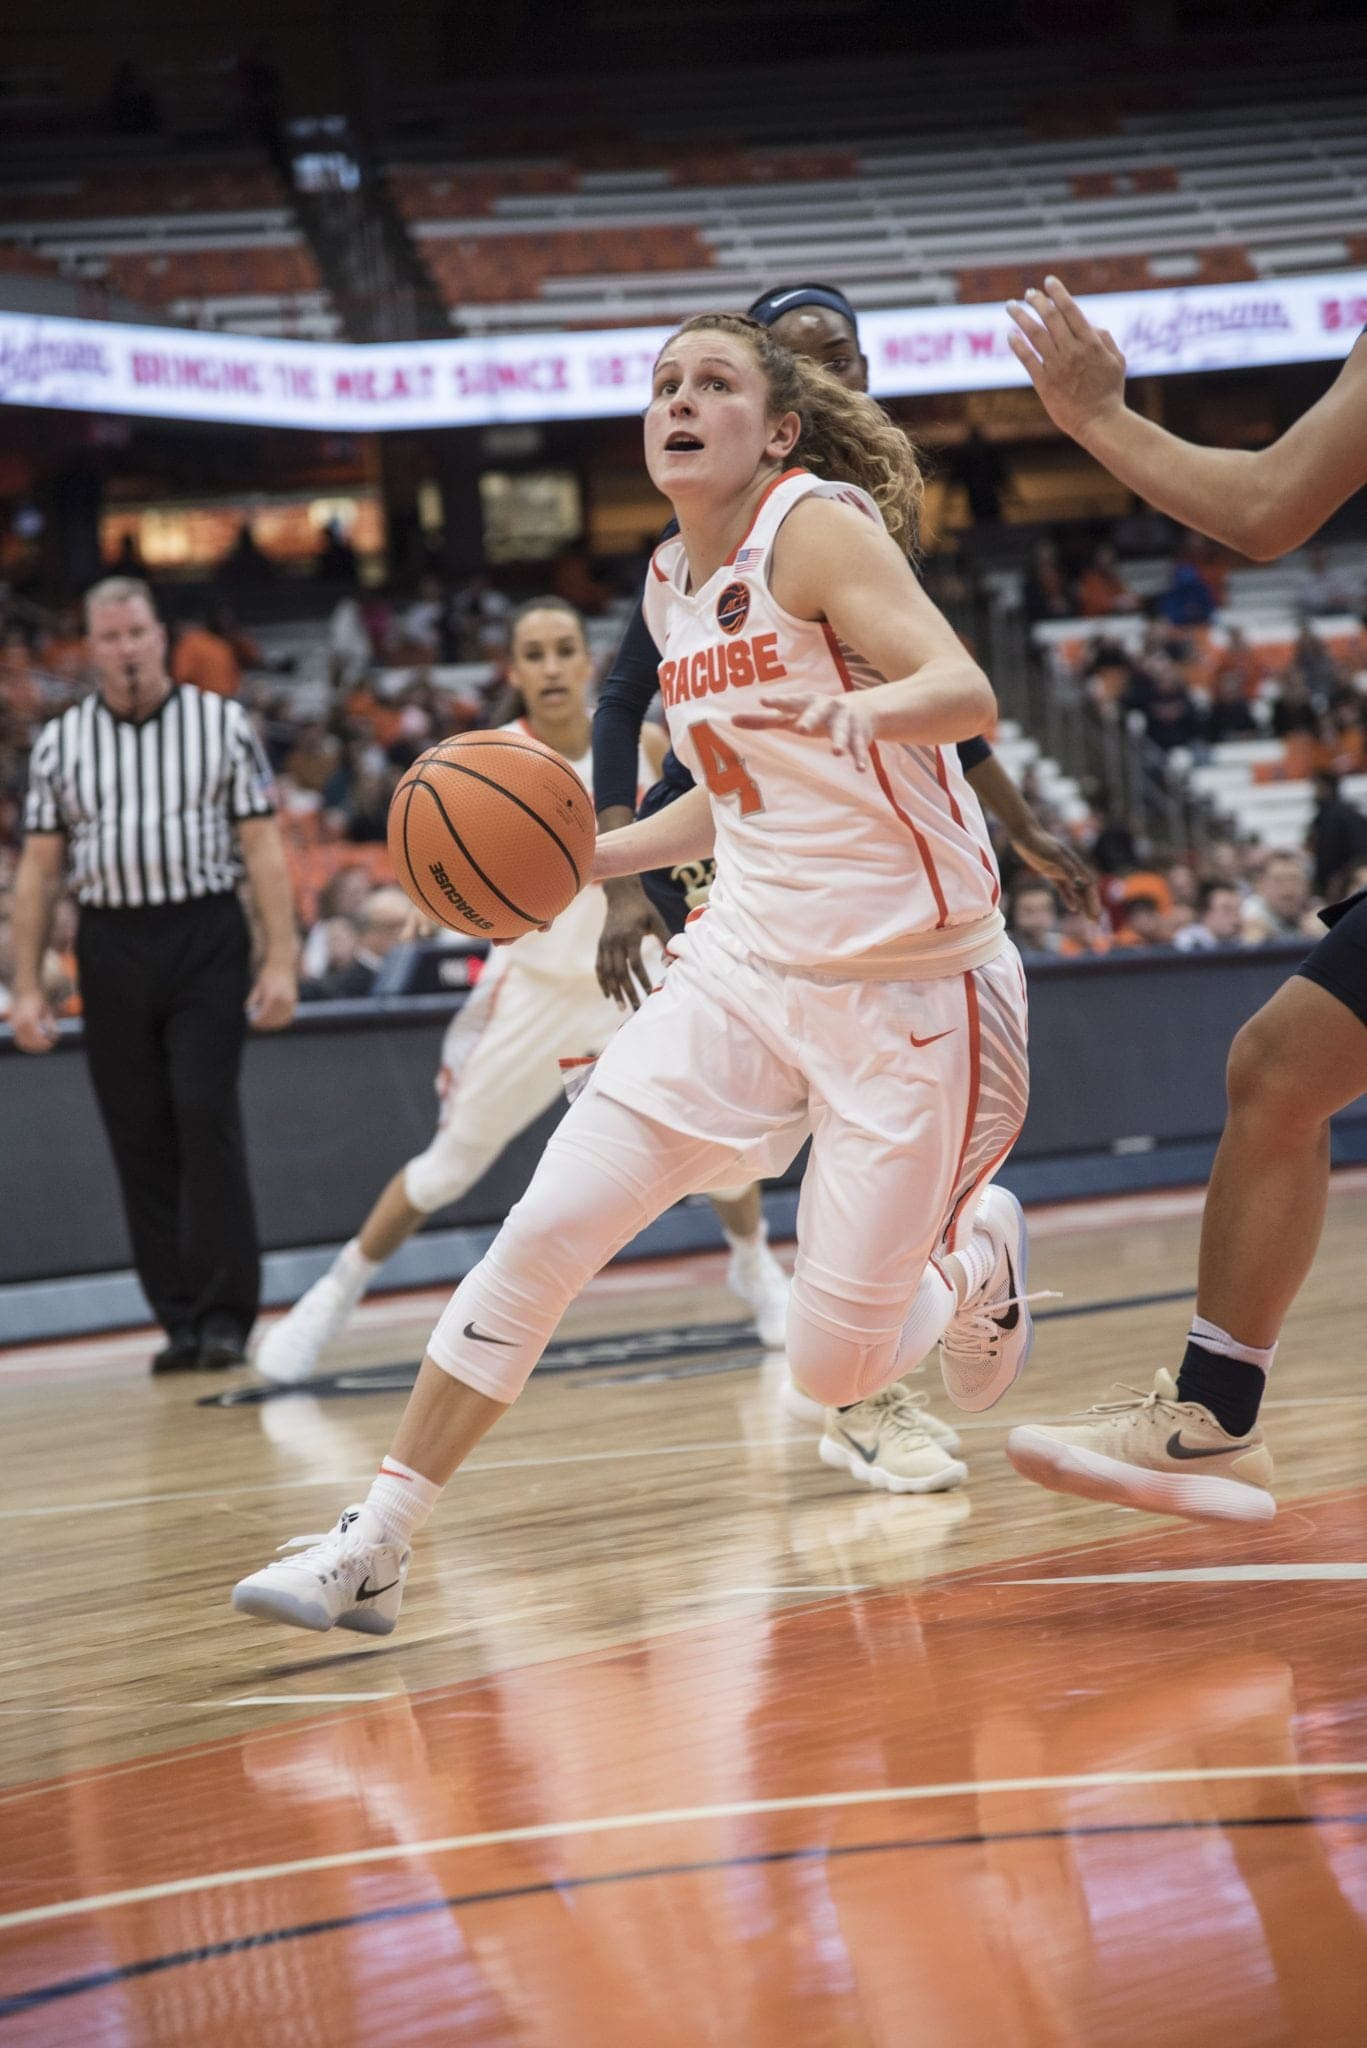 Women's basketball against Pitt